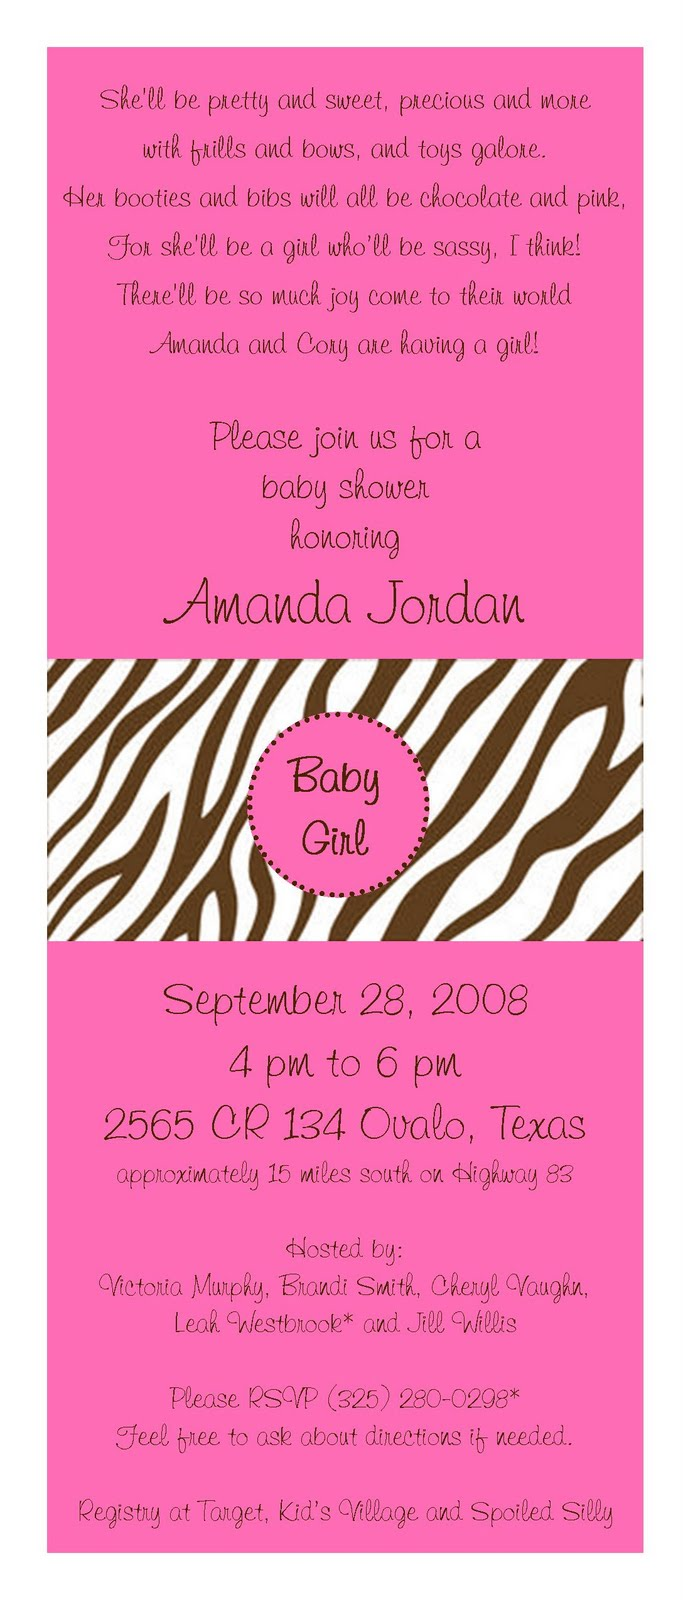 creations by kimberly: Baby Shower/Birth Announcements